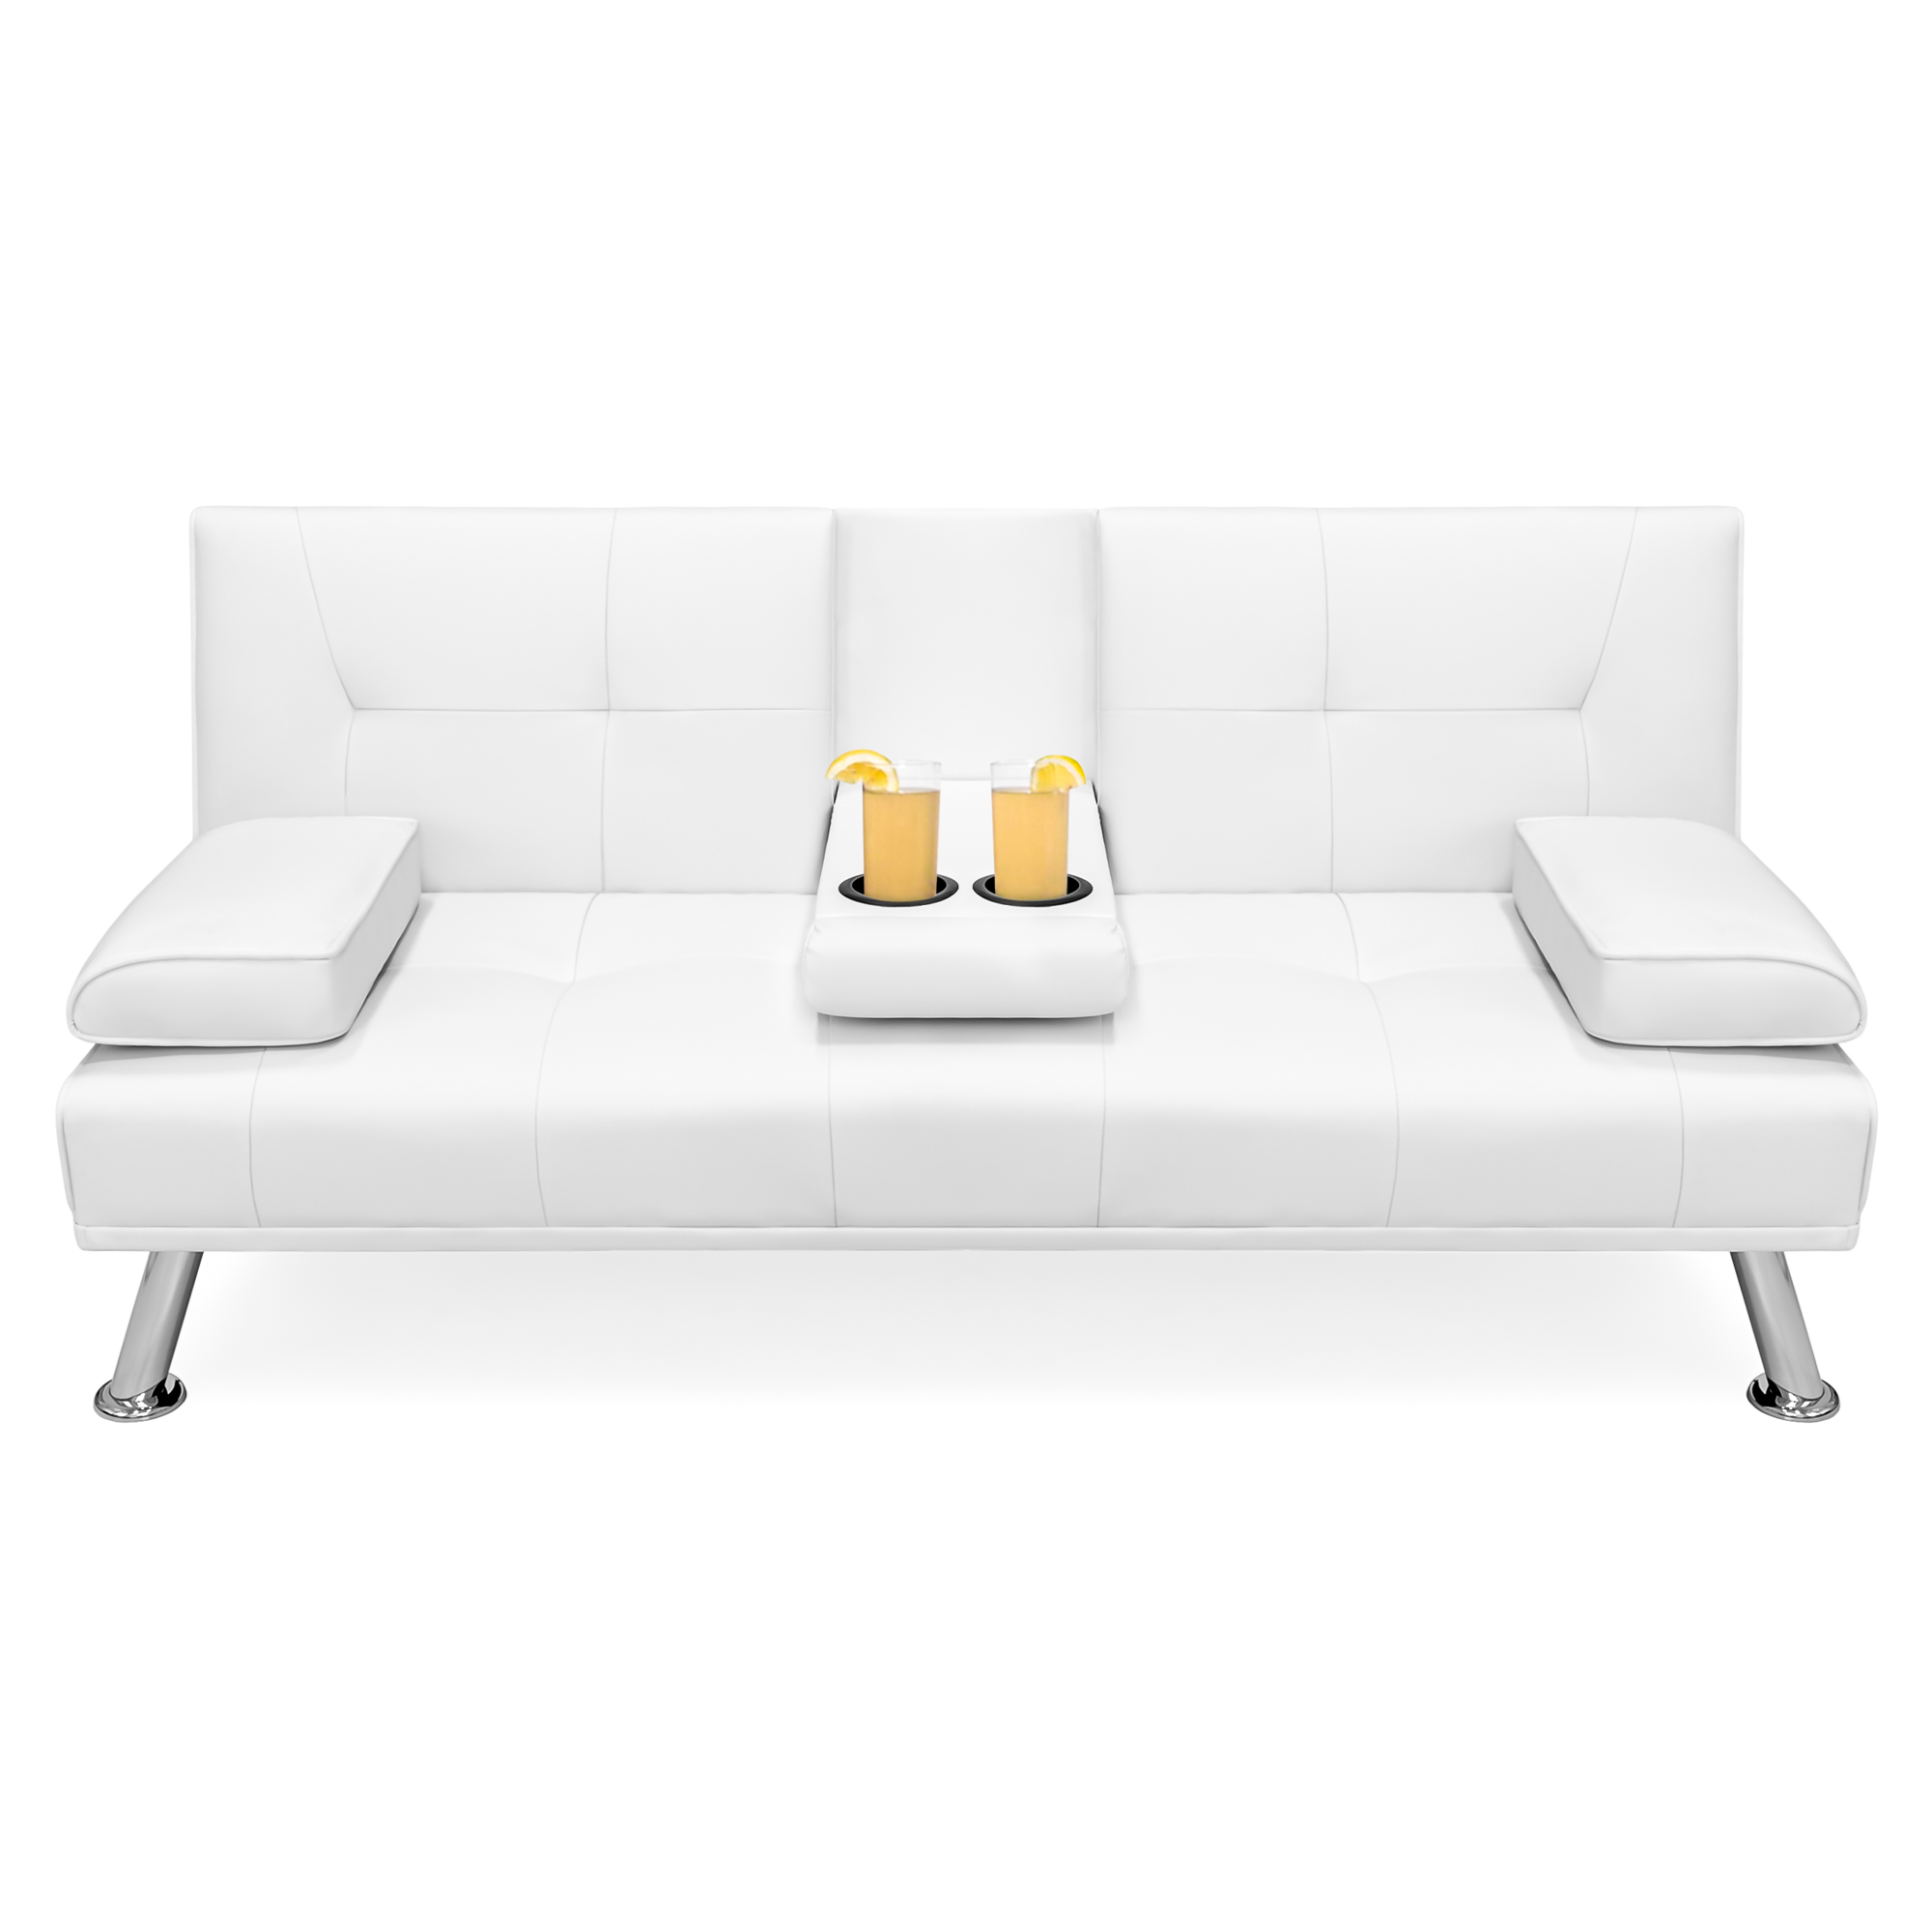 Best Choice Products Modern Faux Leather Futon Sofa Bed Fold Up &...